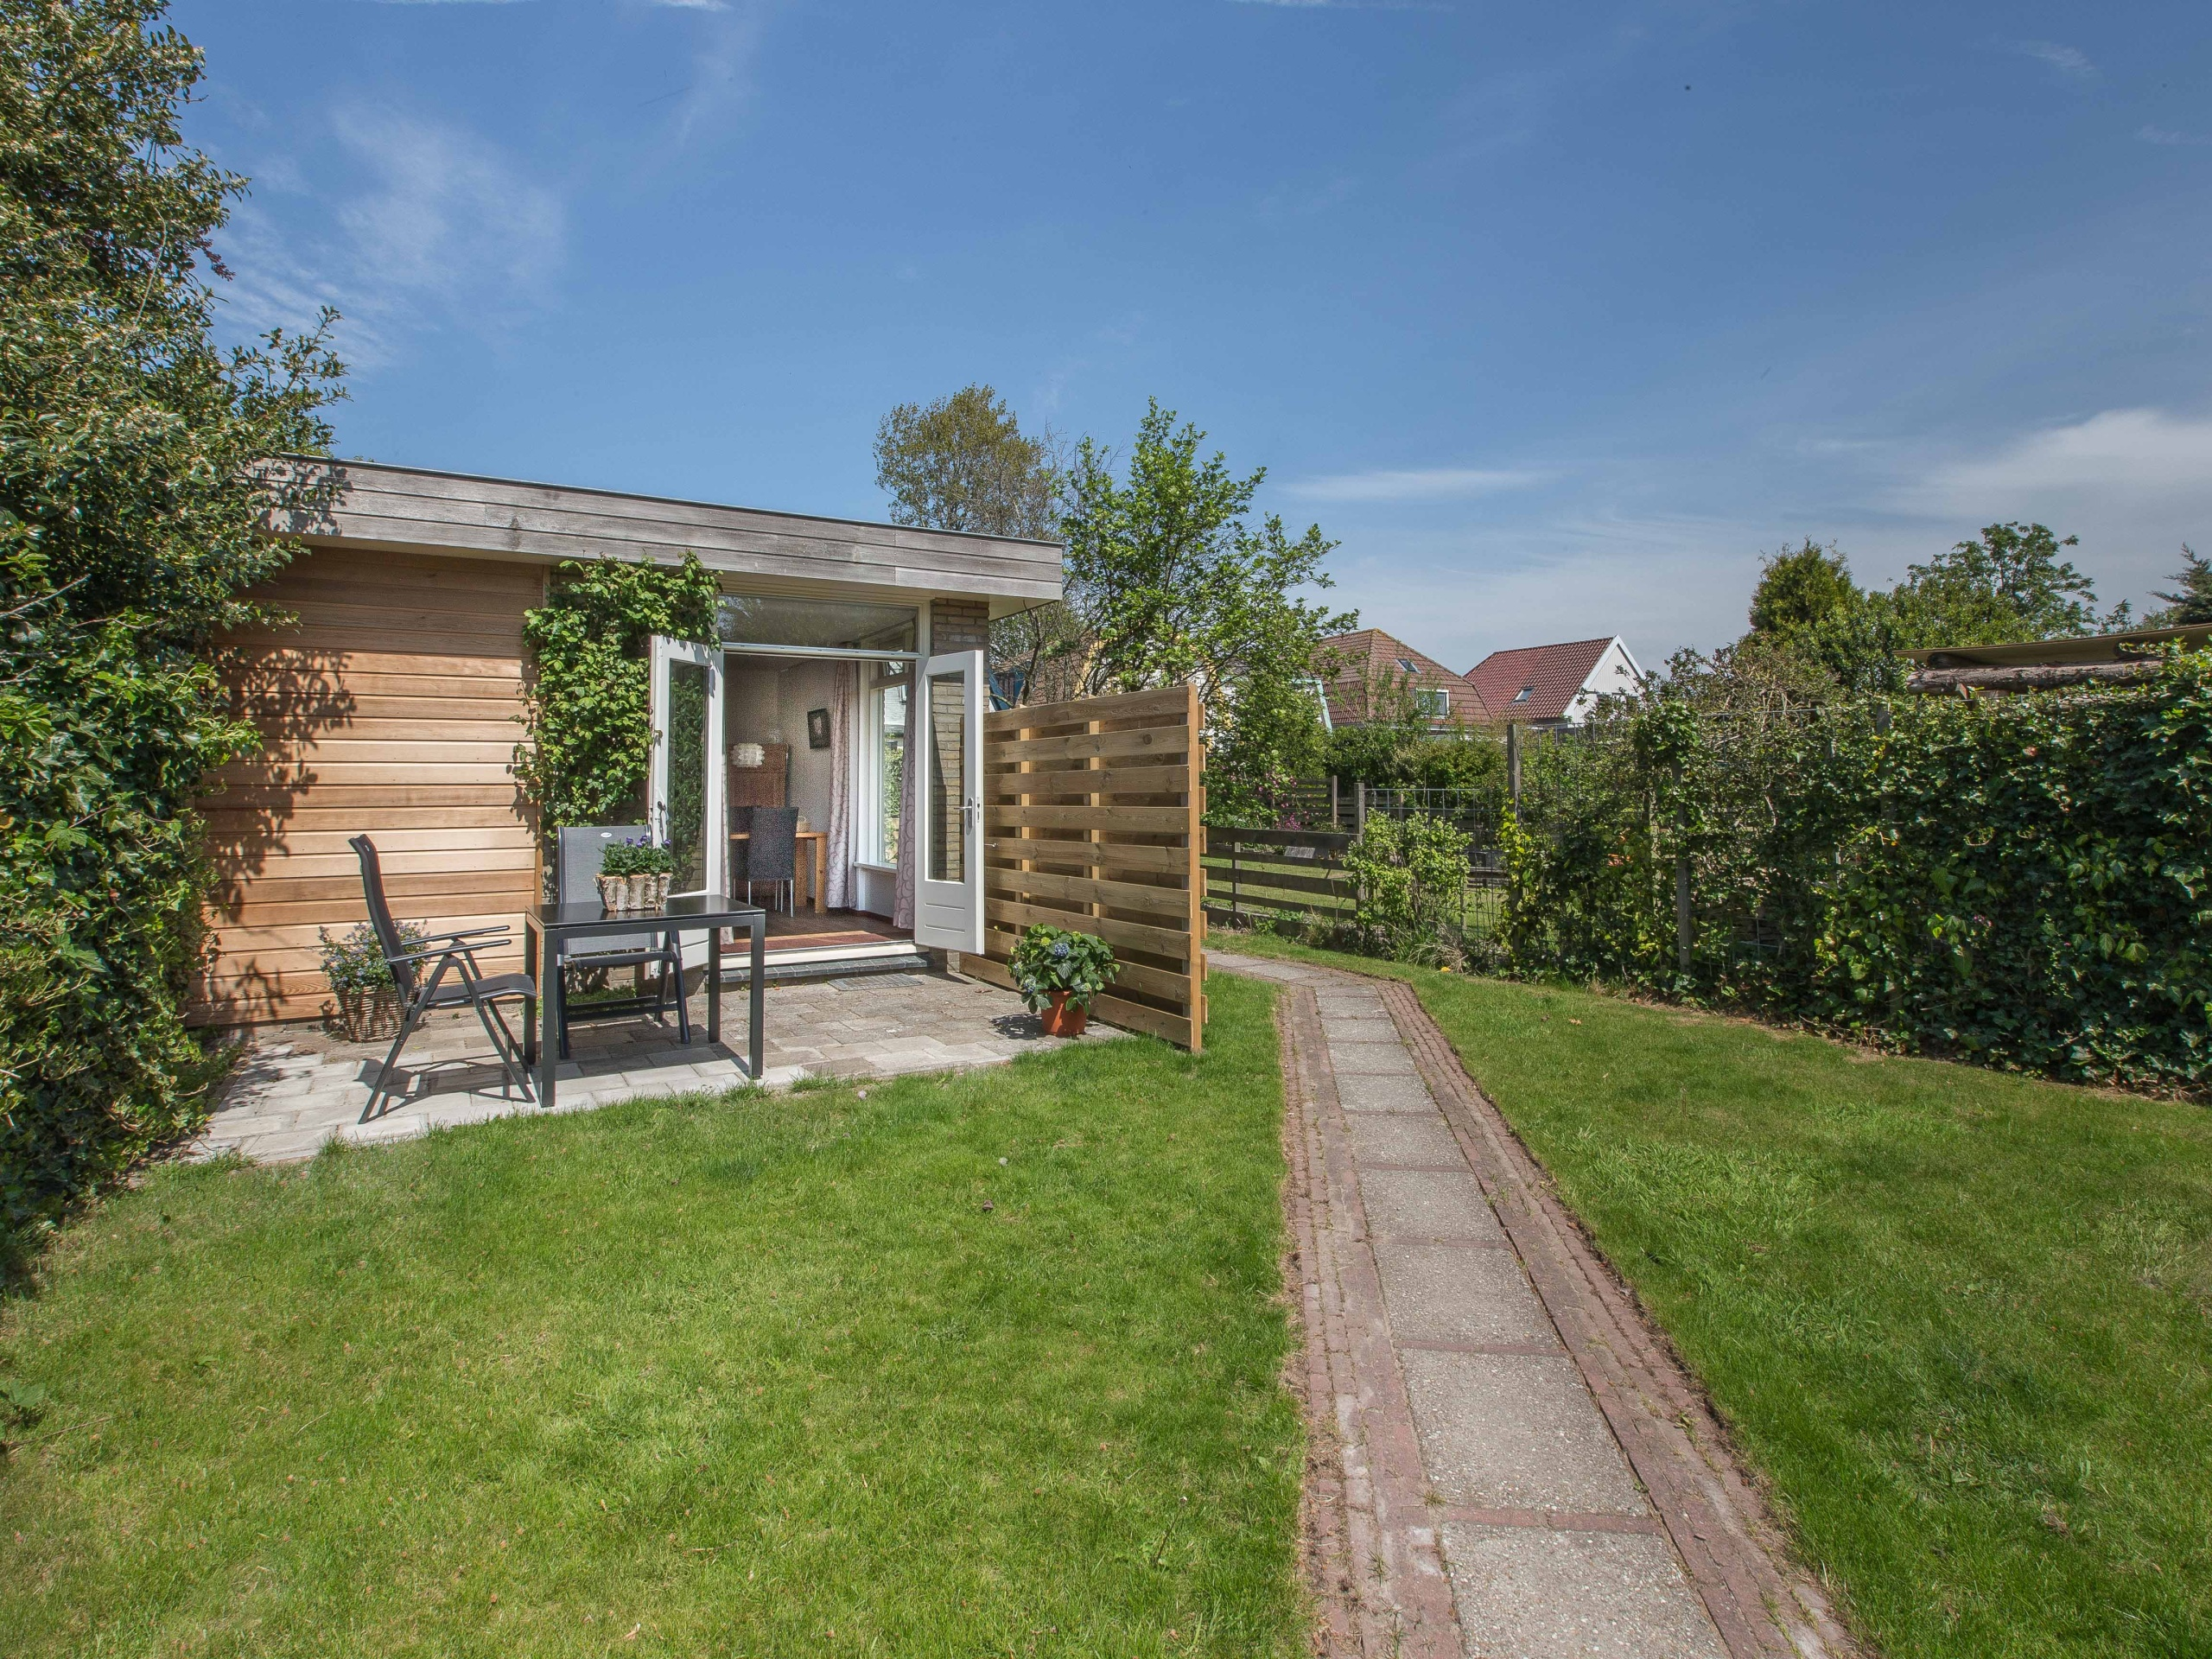 Cozy holiday home within walking distance of the center of Den Burg